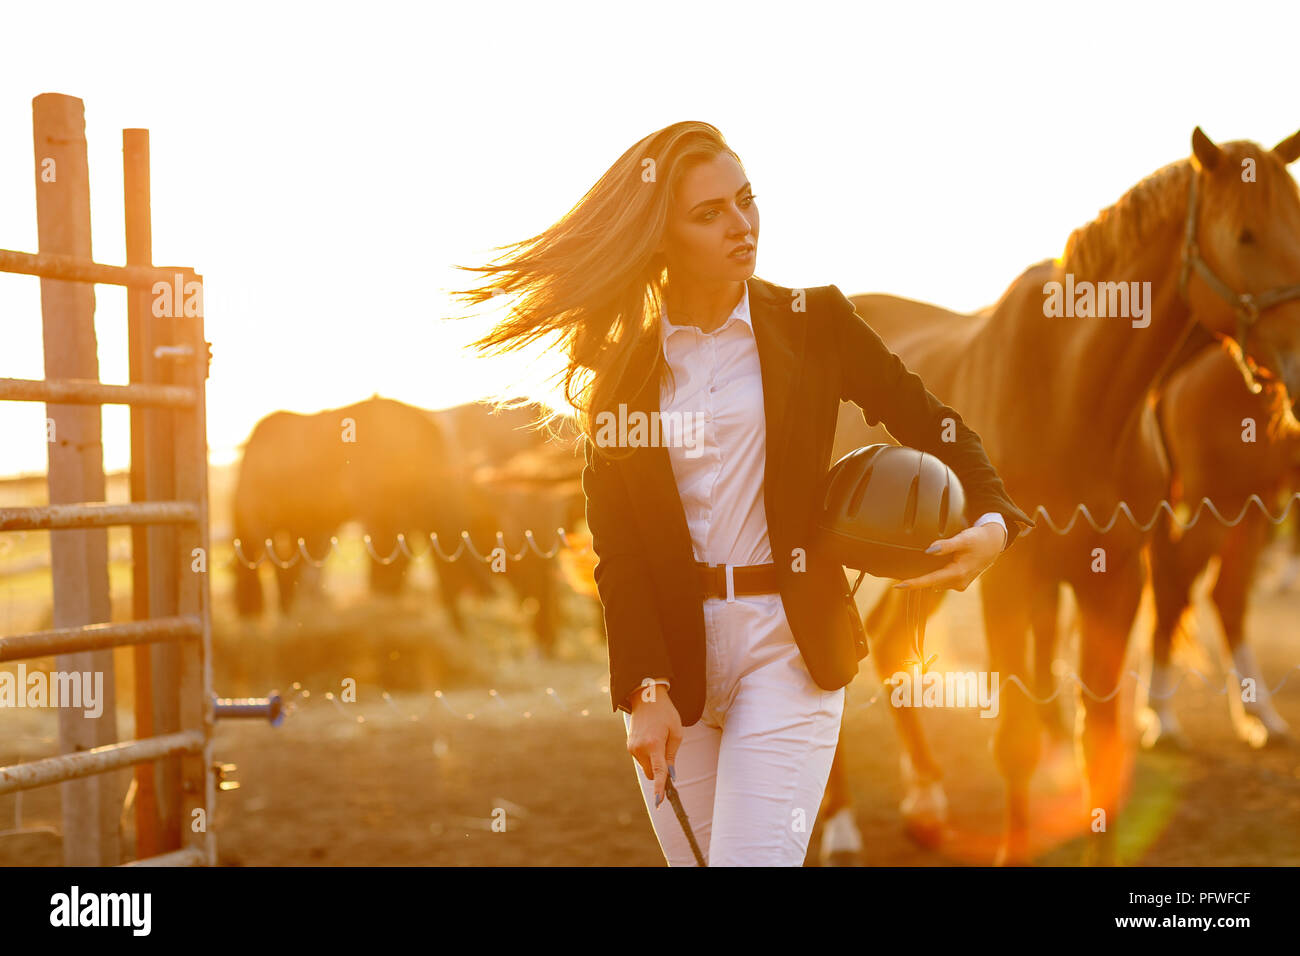 portrait of elegant rider woman with whip stands against the backdrop of horses at sunset. soft light Stock Photo